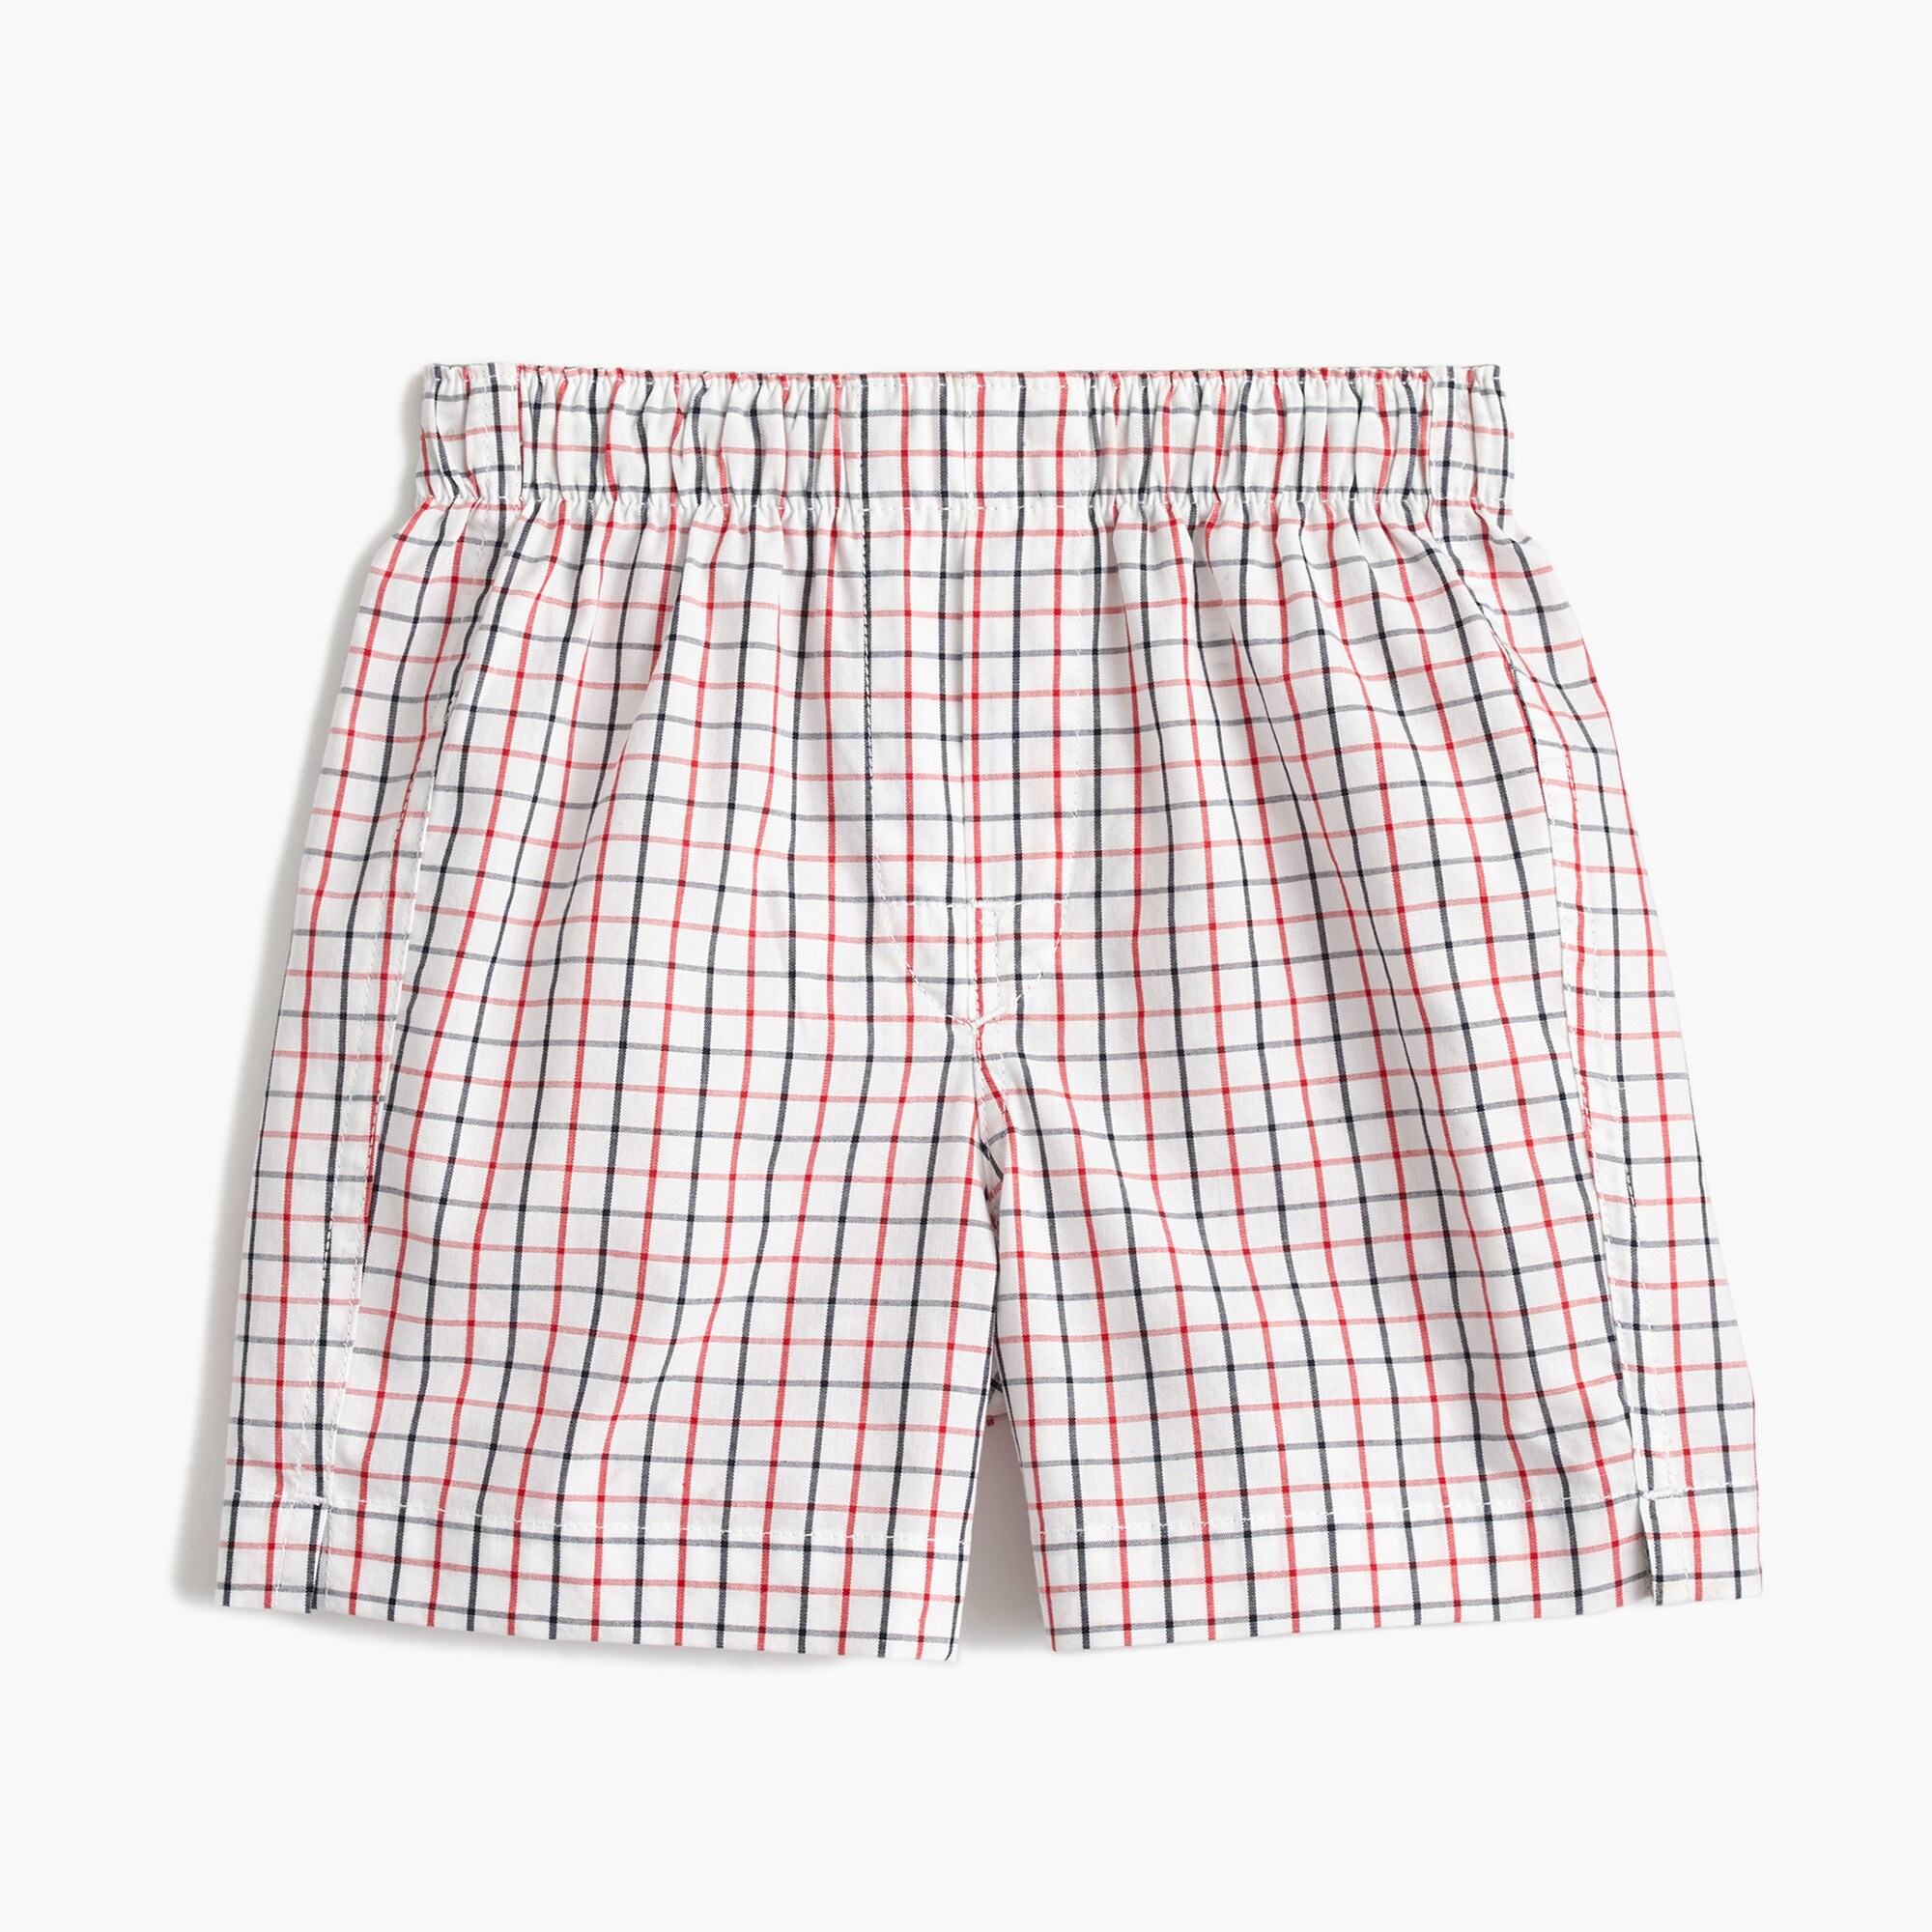 Boys' tattersall boxers